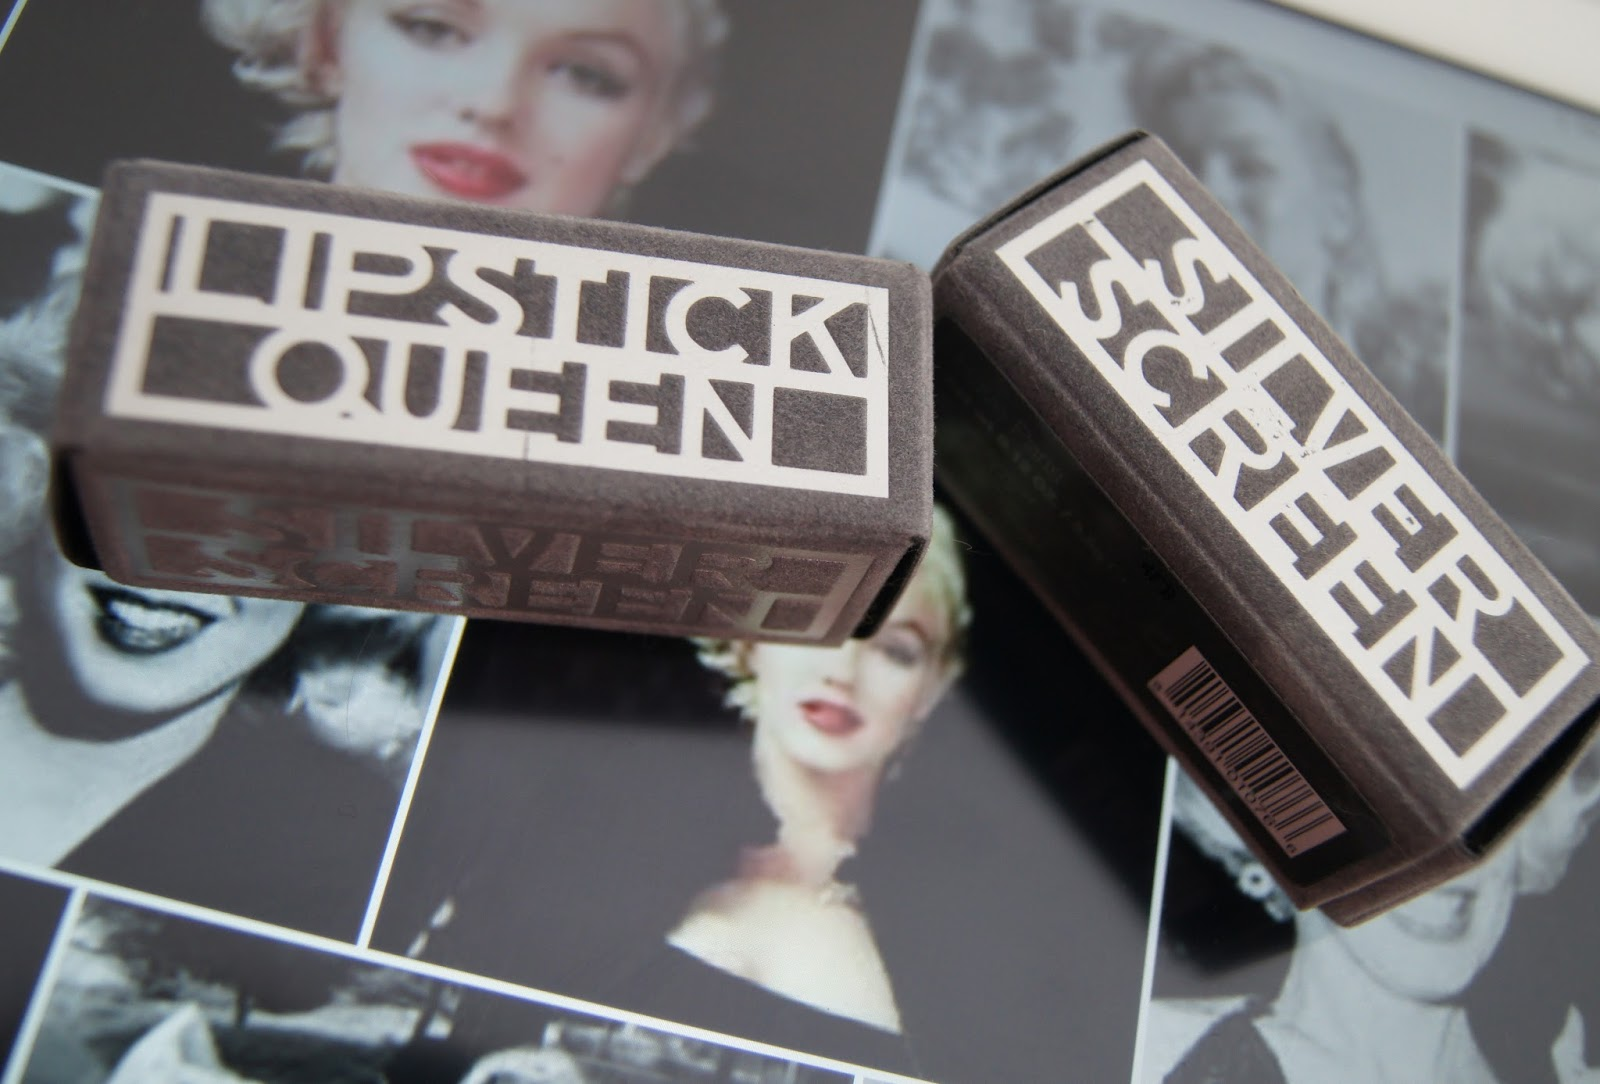 Lipstick Queen Silver Screen lipstick review